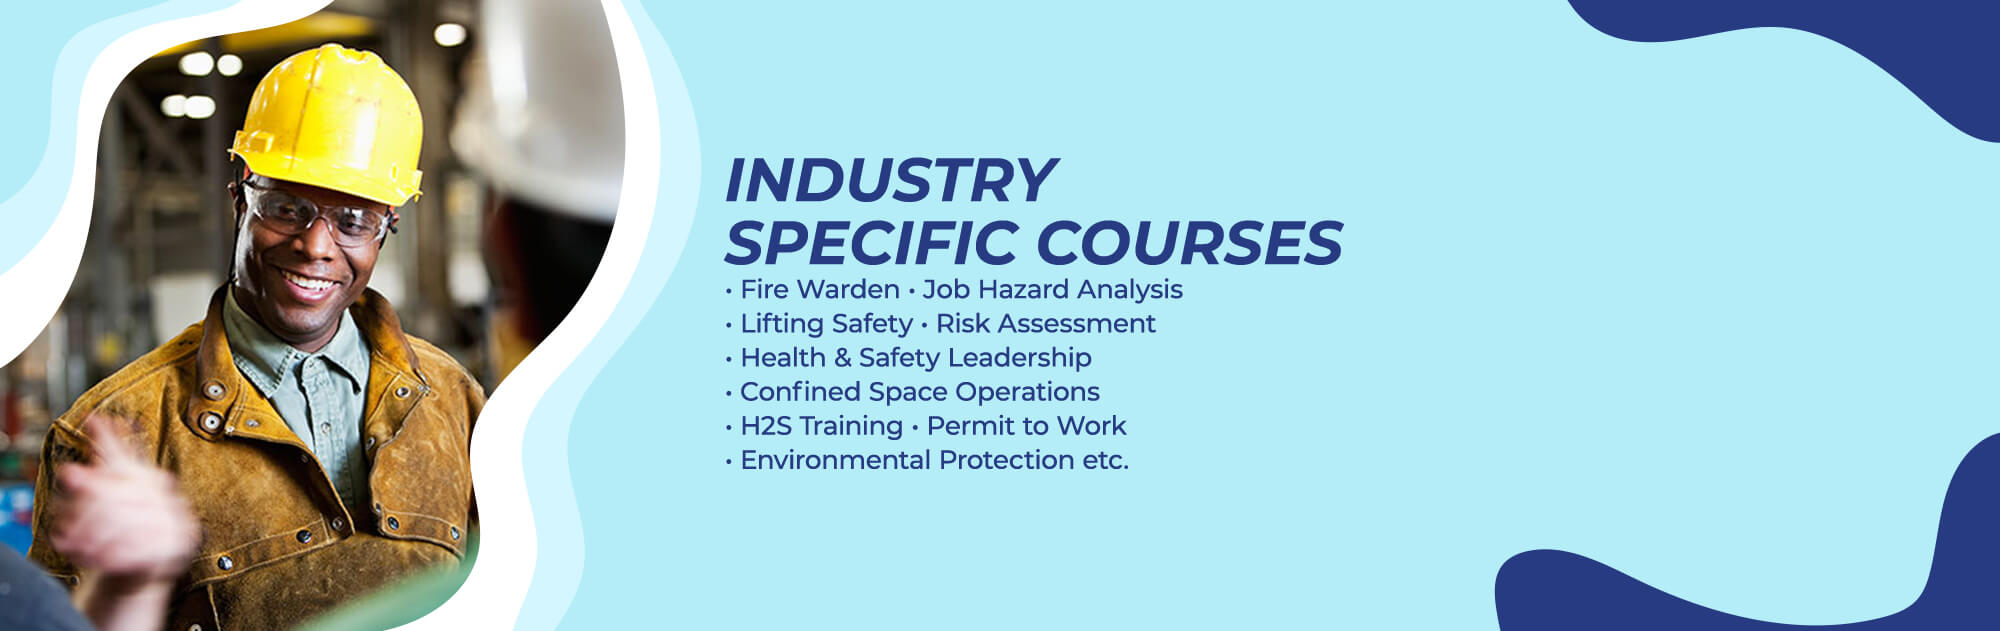 Industry Specific Courses - Fire Warden, Job Hazard Analysis, Lifting Safety, Risk Assessment, Health and Safety Leadership, Confined Space Operations H2S Training, Permit to Work, Environmental Protection